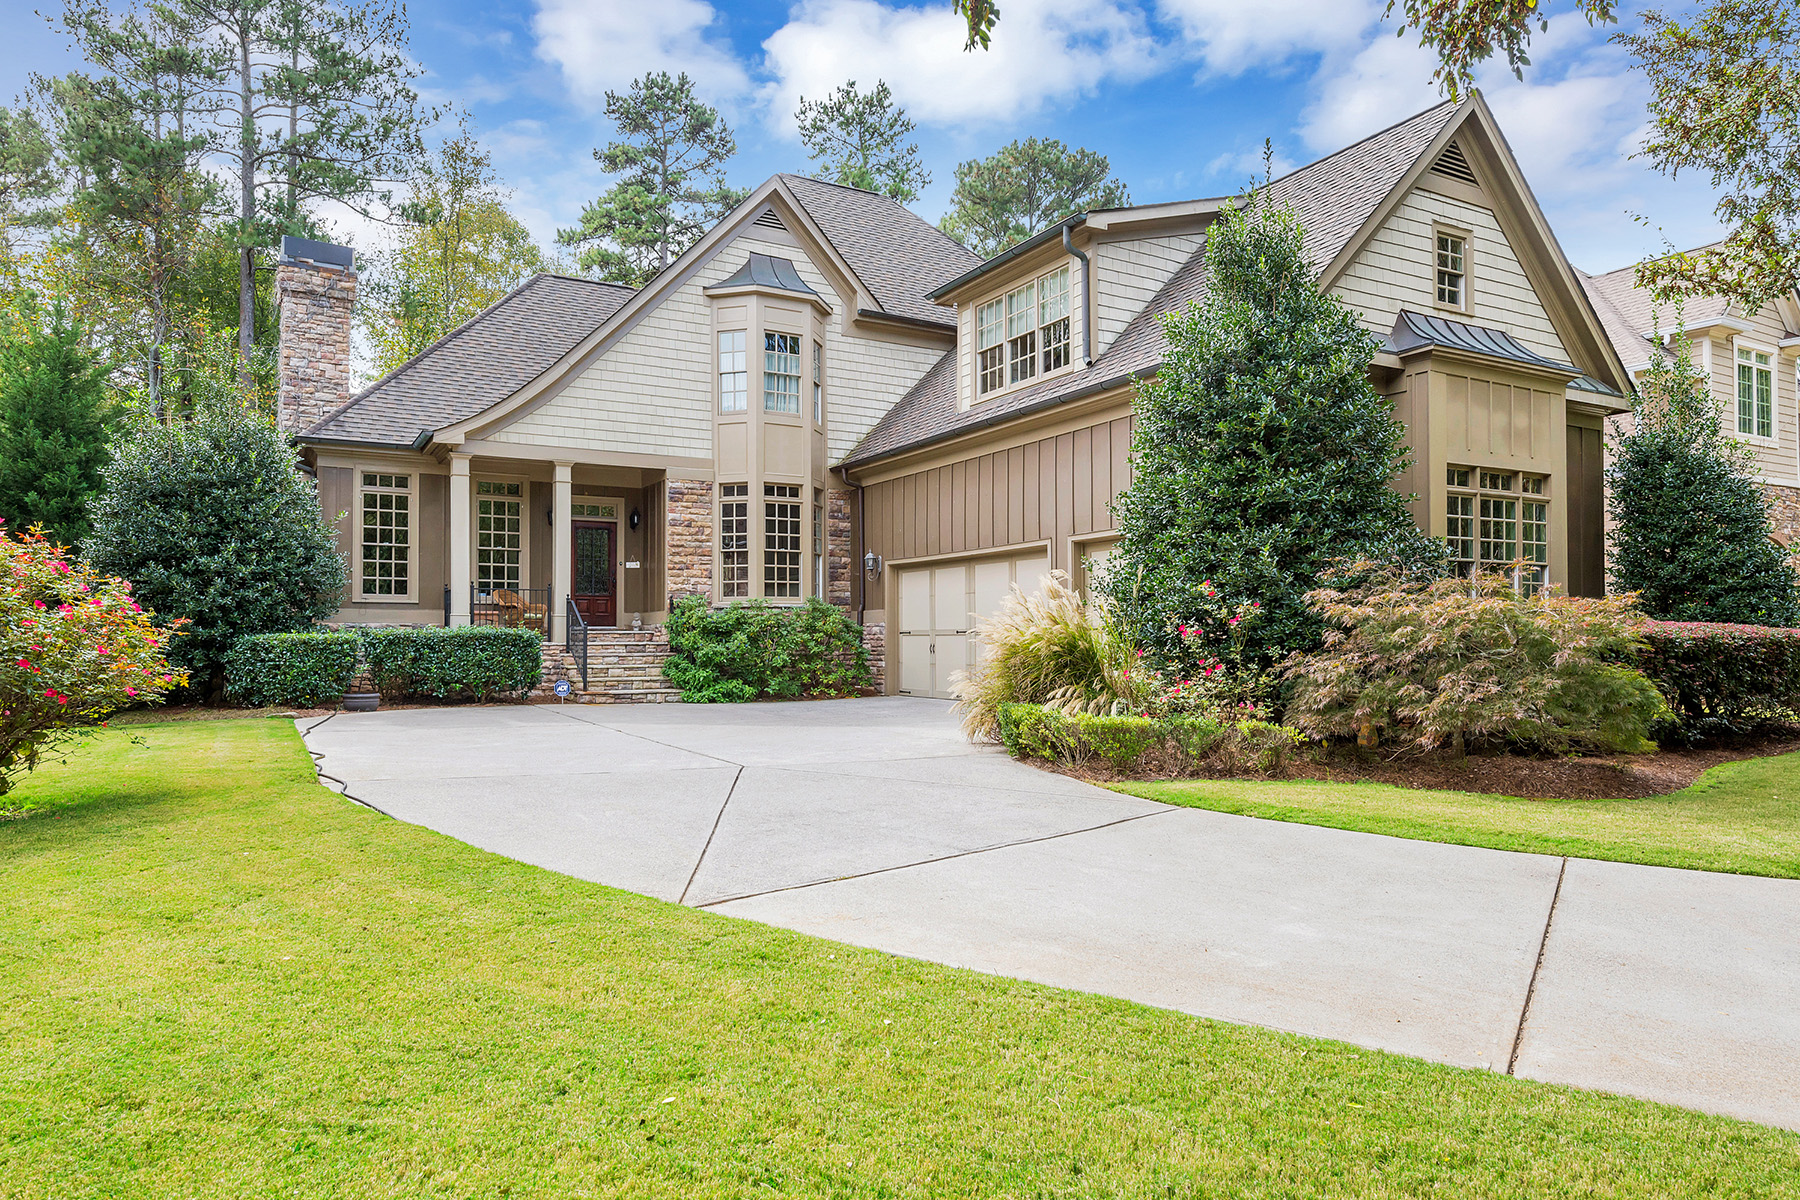 Single Family Home for Sale at Stunning Custom Home On Golf Course In Windward 6299 Windward Parkway Alpharetta, Georgia 30005 United States